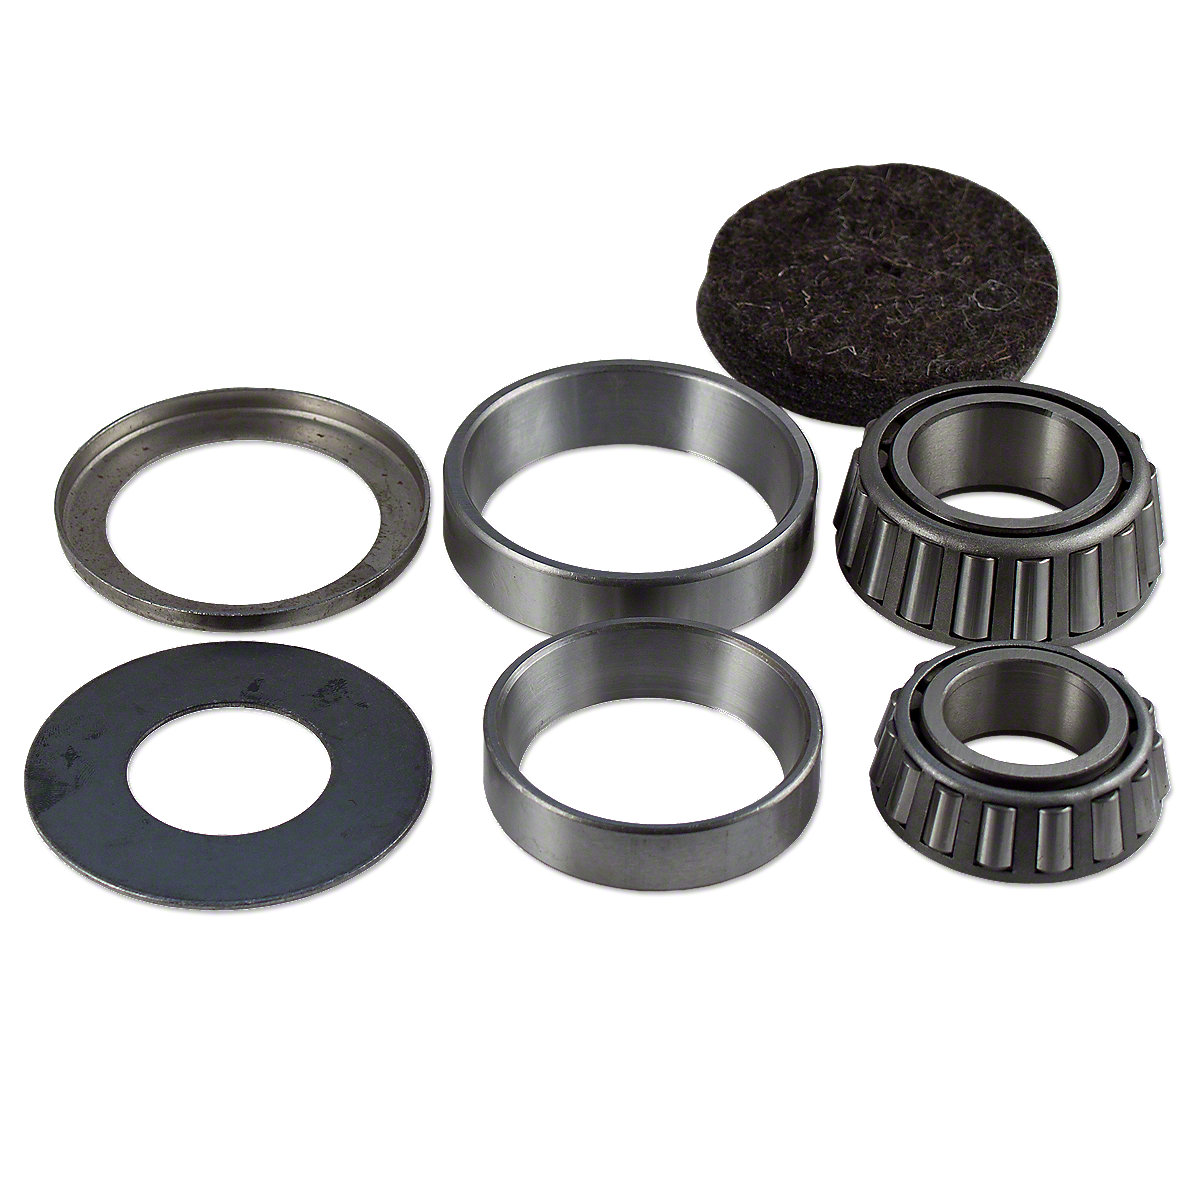 Acs1793 Front Wheel Bearing Kit For Allis Chalmers D10 D12 D14 B Wiring Harness D15